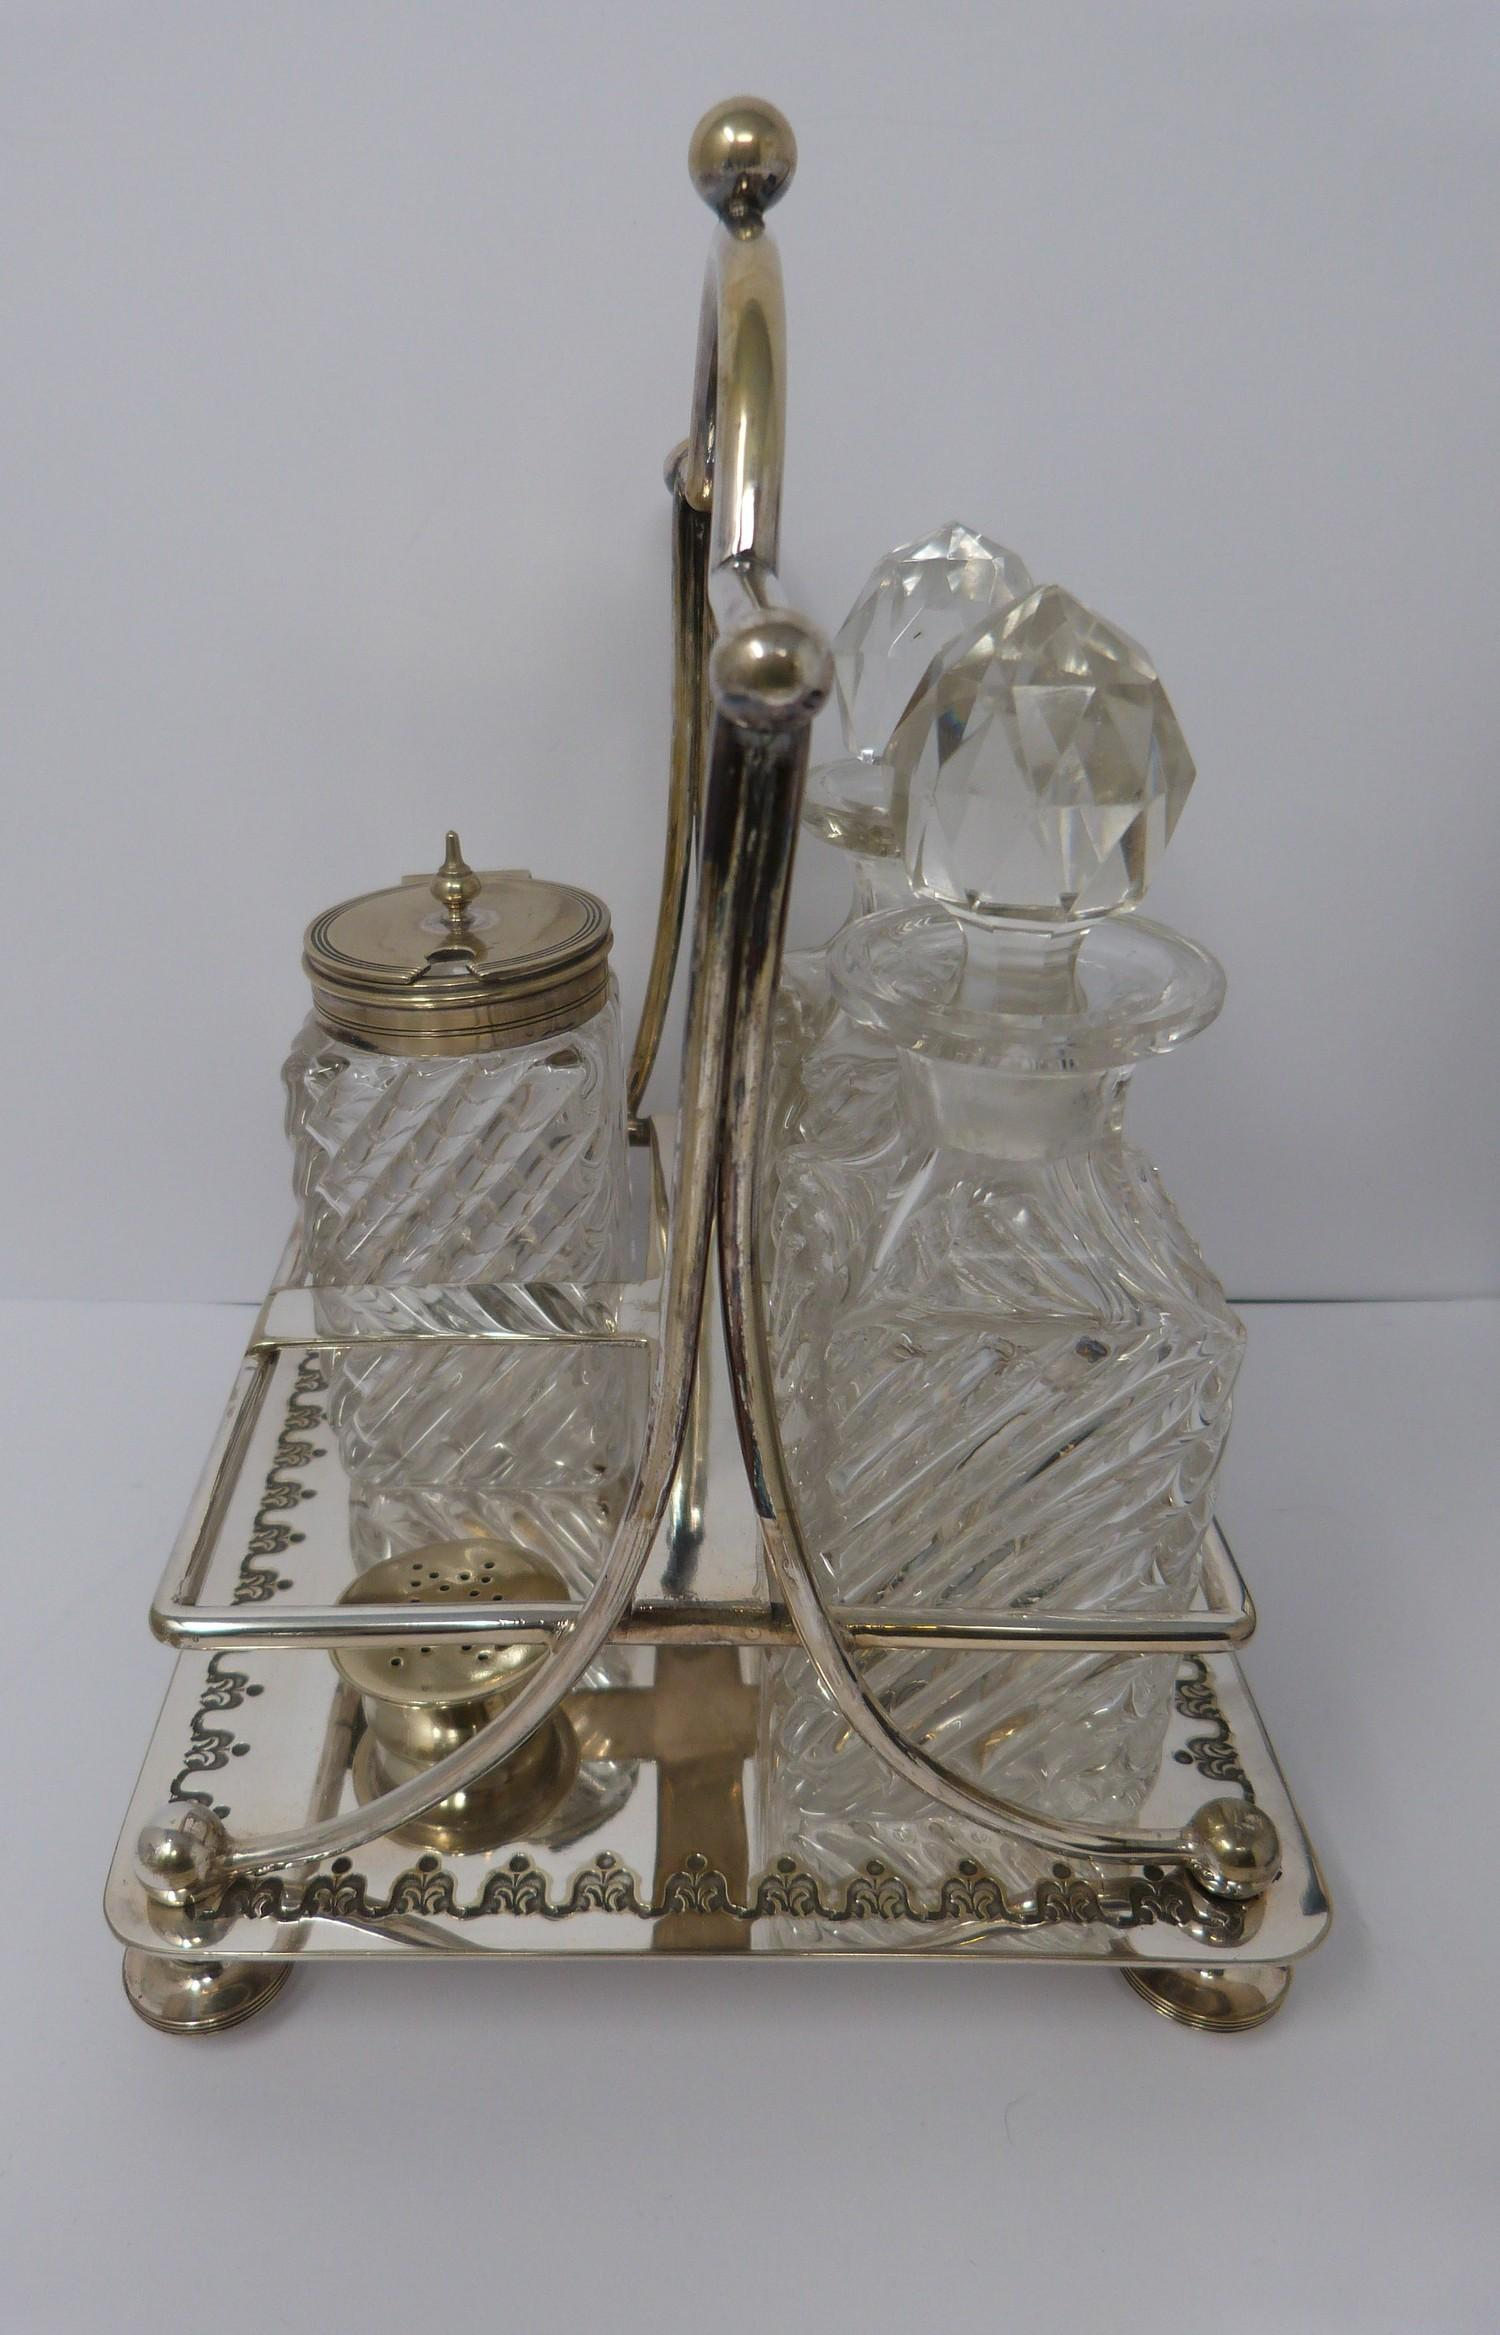 Collection of silver plate including, cruet, cut glass buiscuit barrel, cased butter and cut glass - Image 4 of 7